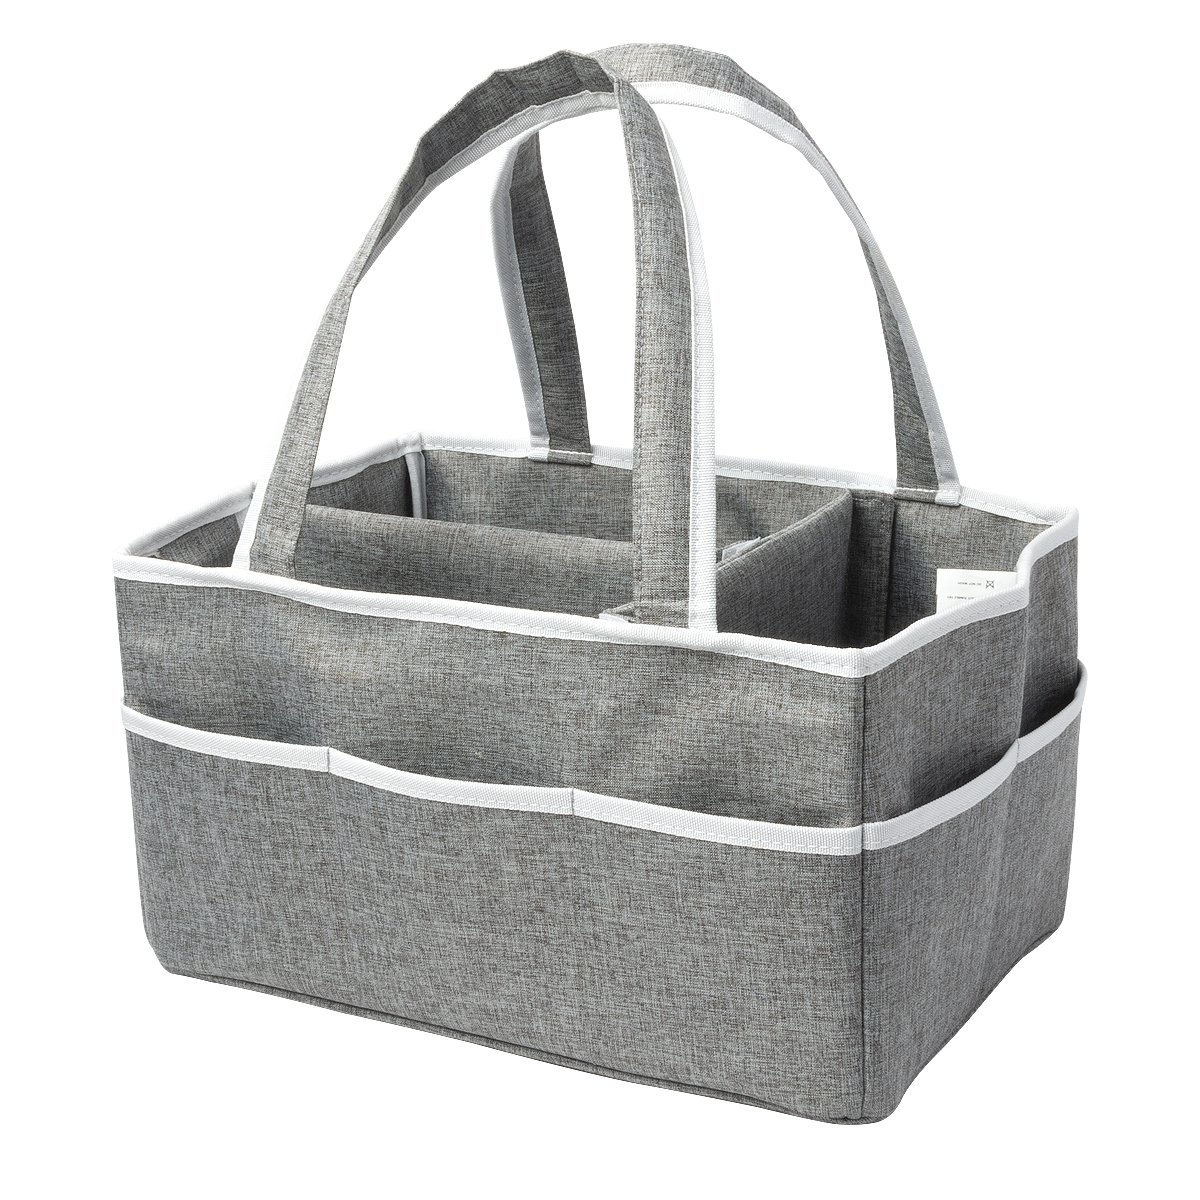 Diaper Caddy - Portable Diaper Caddy Organizer, Baby Caddy, Trend Diaper Basket, Baby Shower Gifts, Baby Caddy Storage, Nursery Storage Bin, Foldable Travel Car Caddy for Baby Boys Girls Moms (Gray)